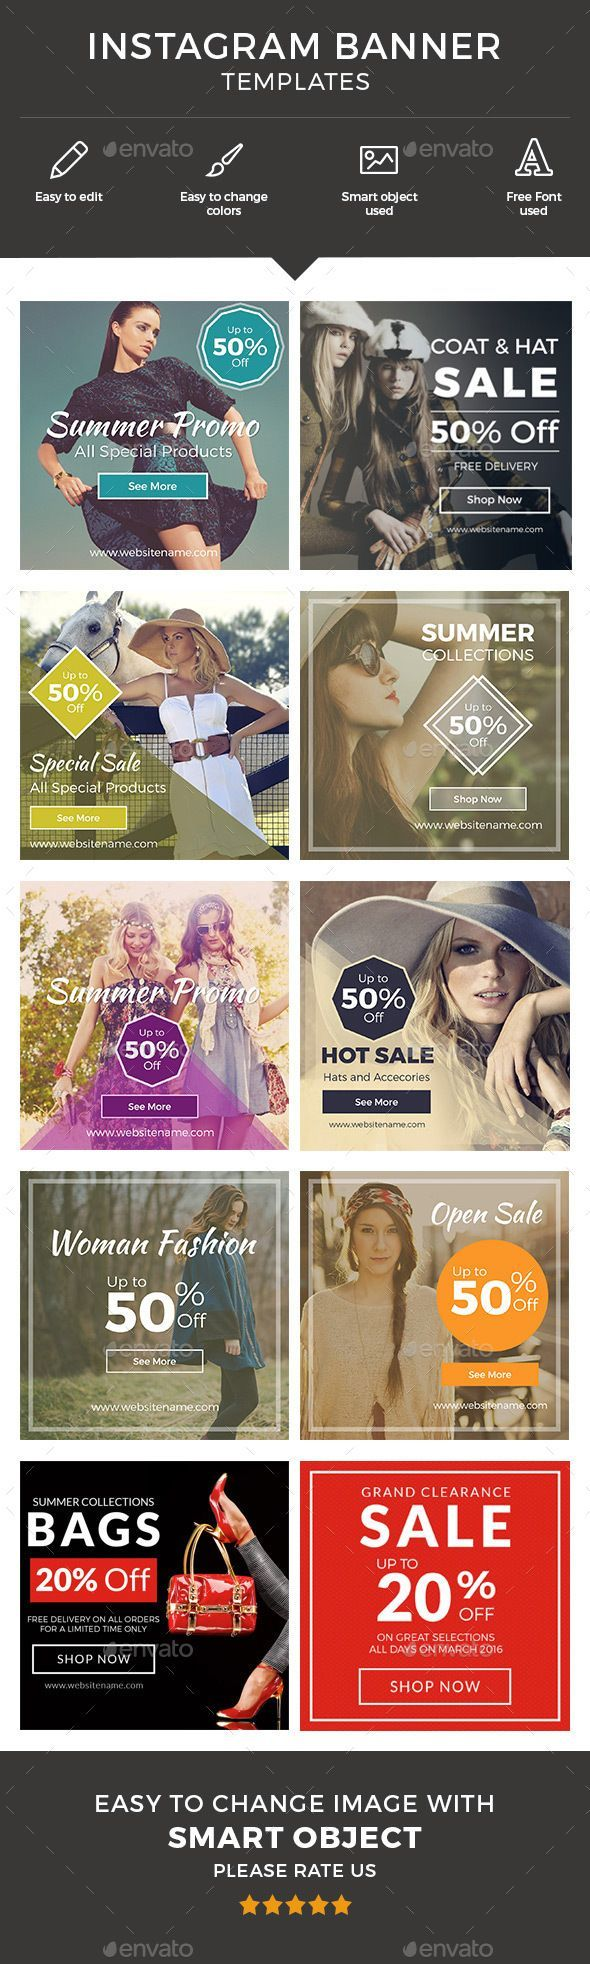 118 best social media templates images on pinterest social media 118 best social media templates images on pinterest social media template mockup and social media design pronofoot35fo Image collections